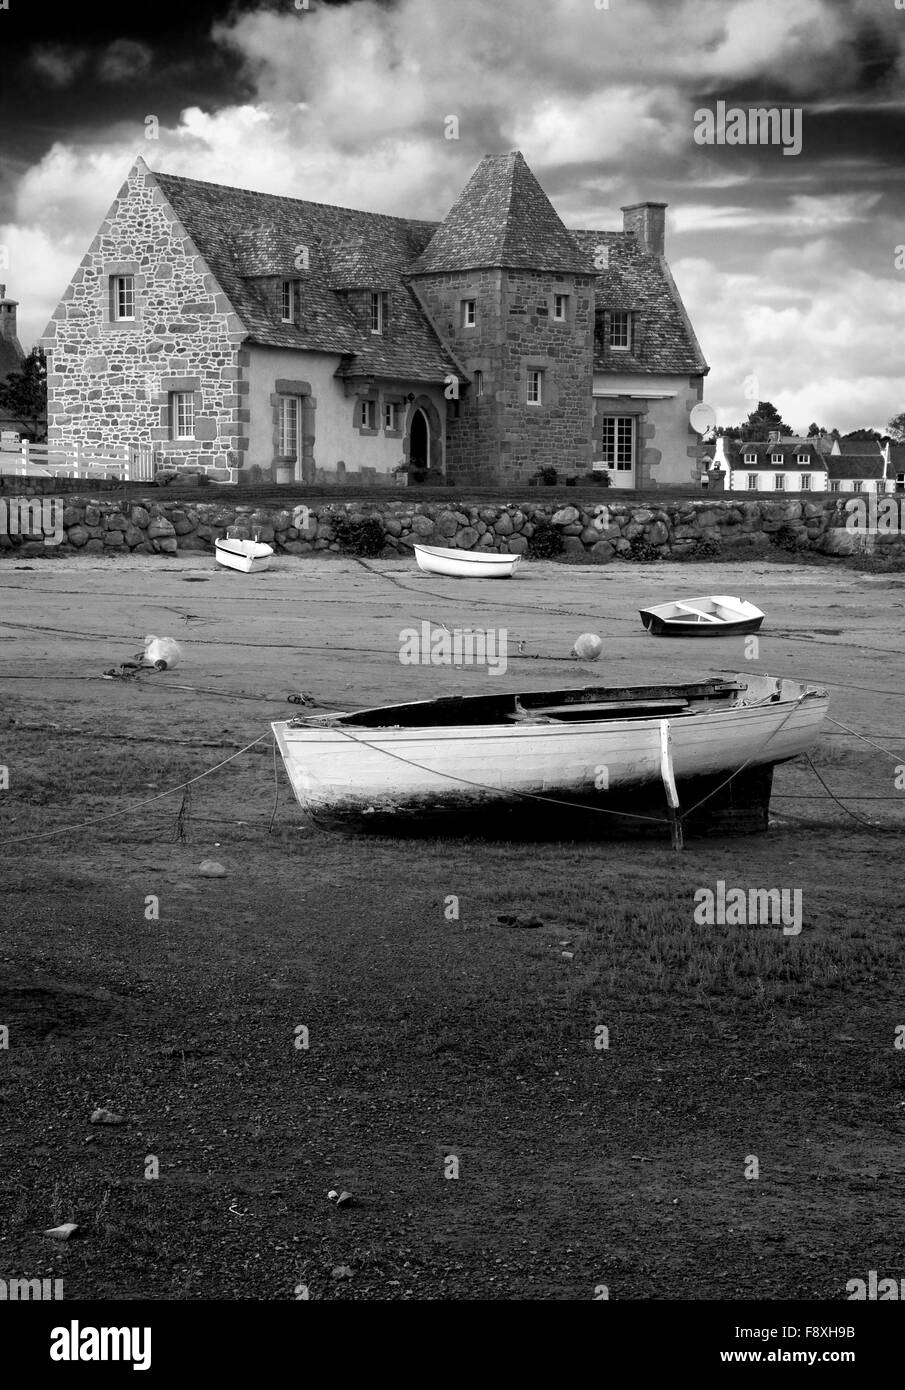 Ancient house and boats on a mooring beautiful scenery in black and white